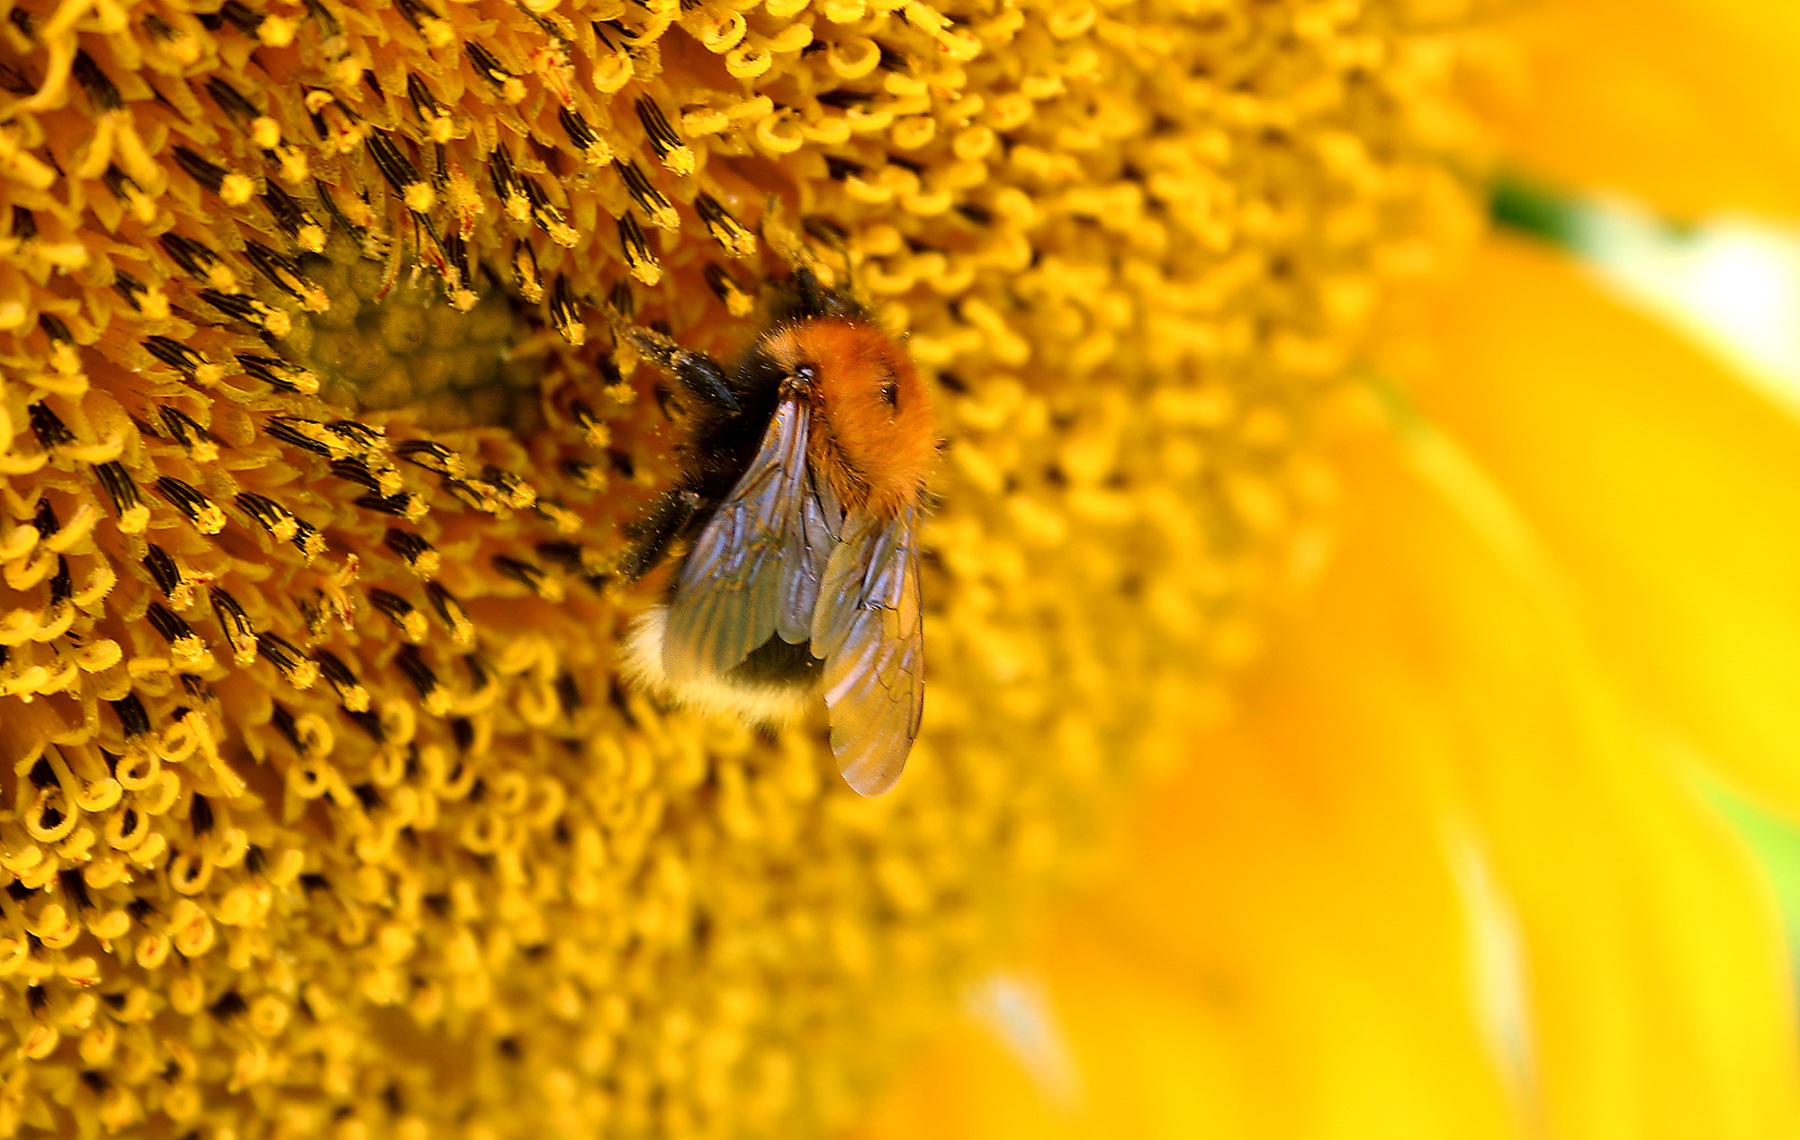 Bumble Bees and Sunflowers